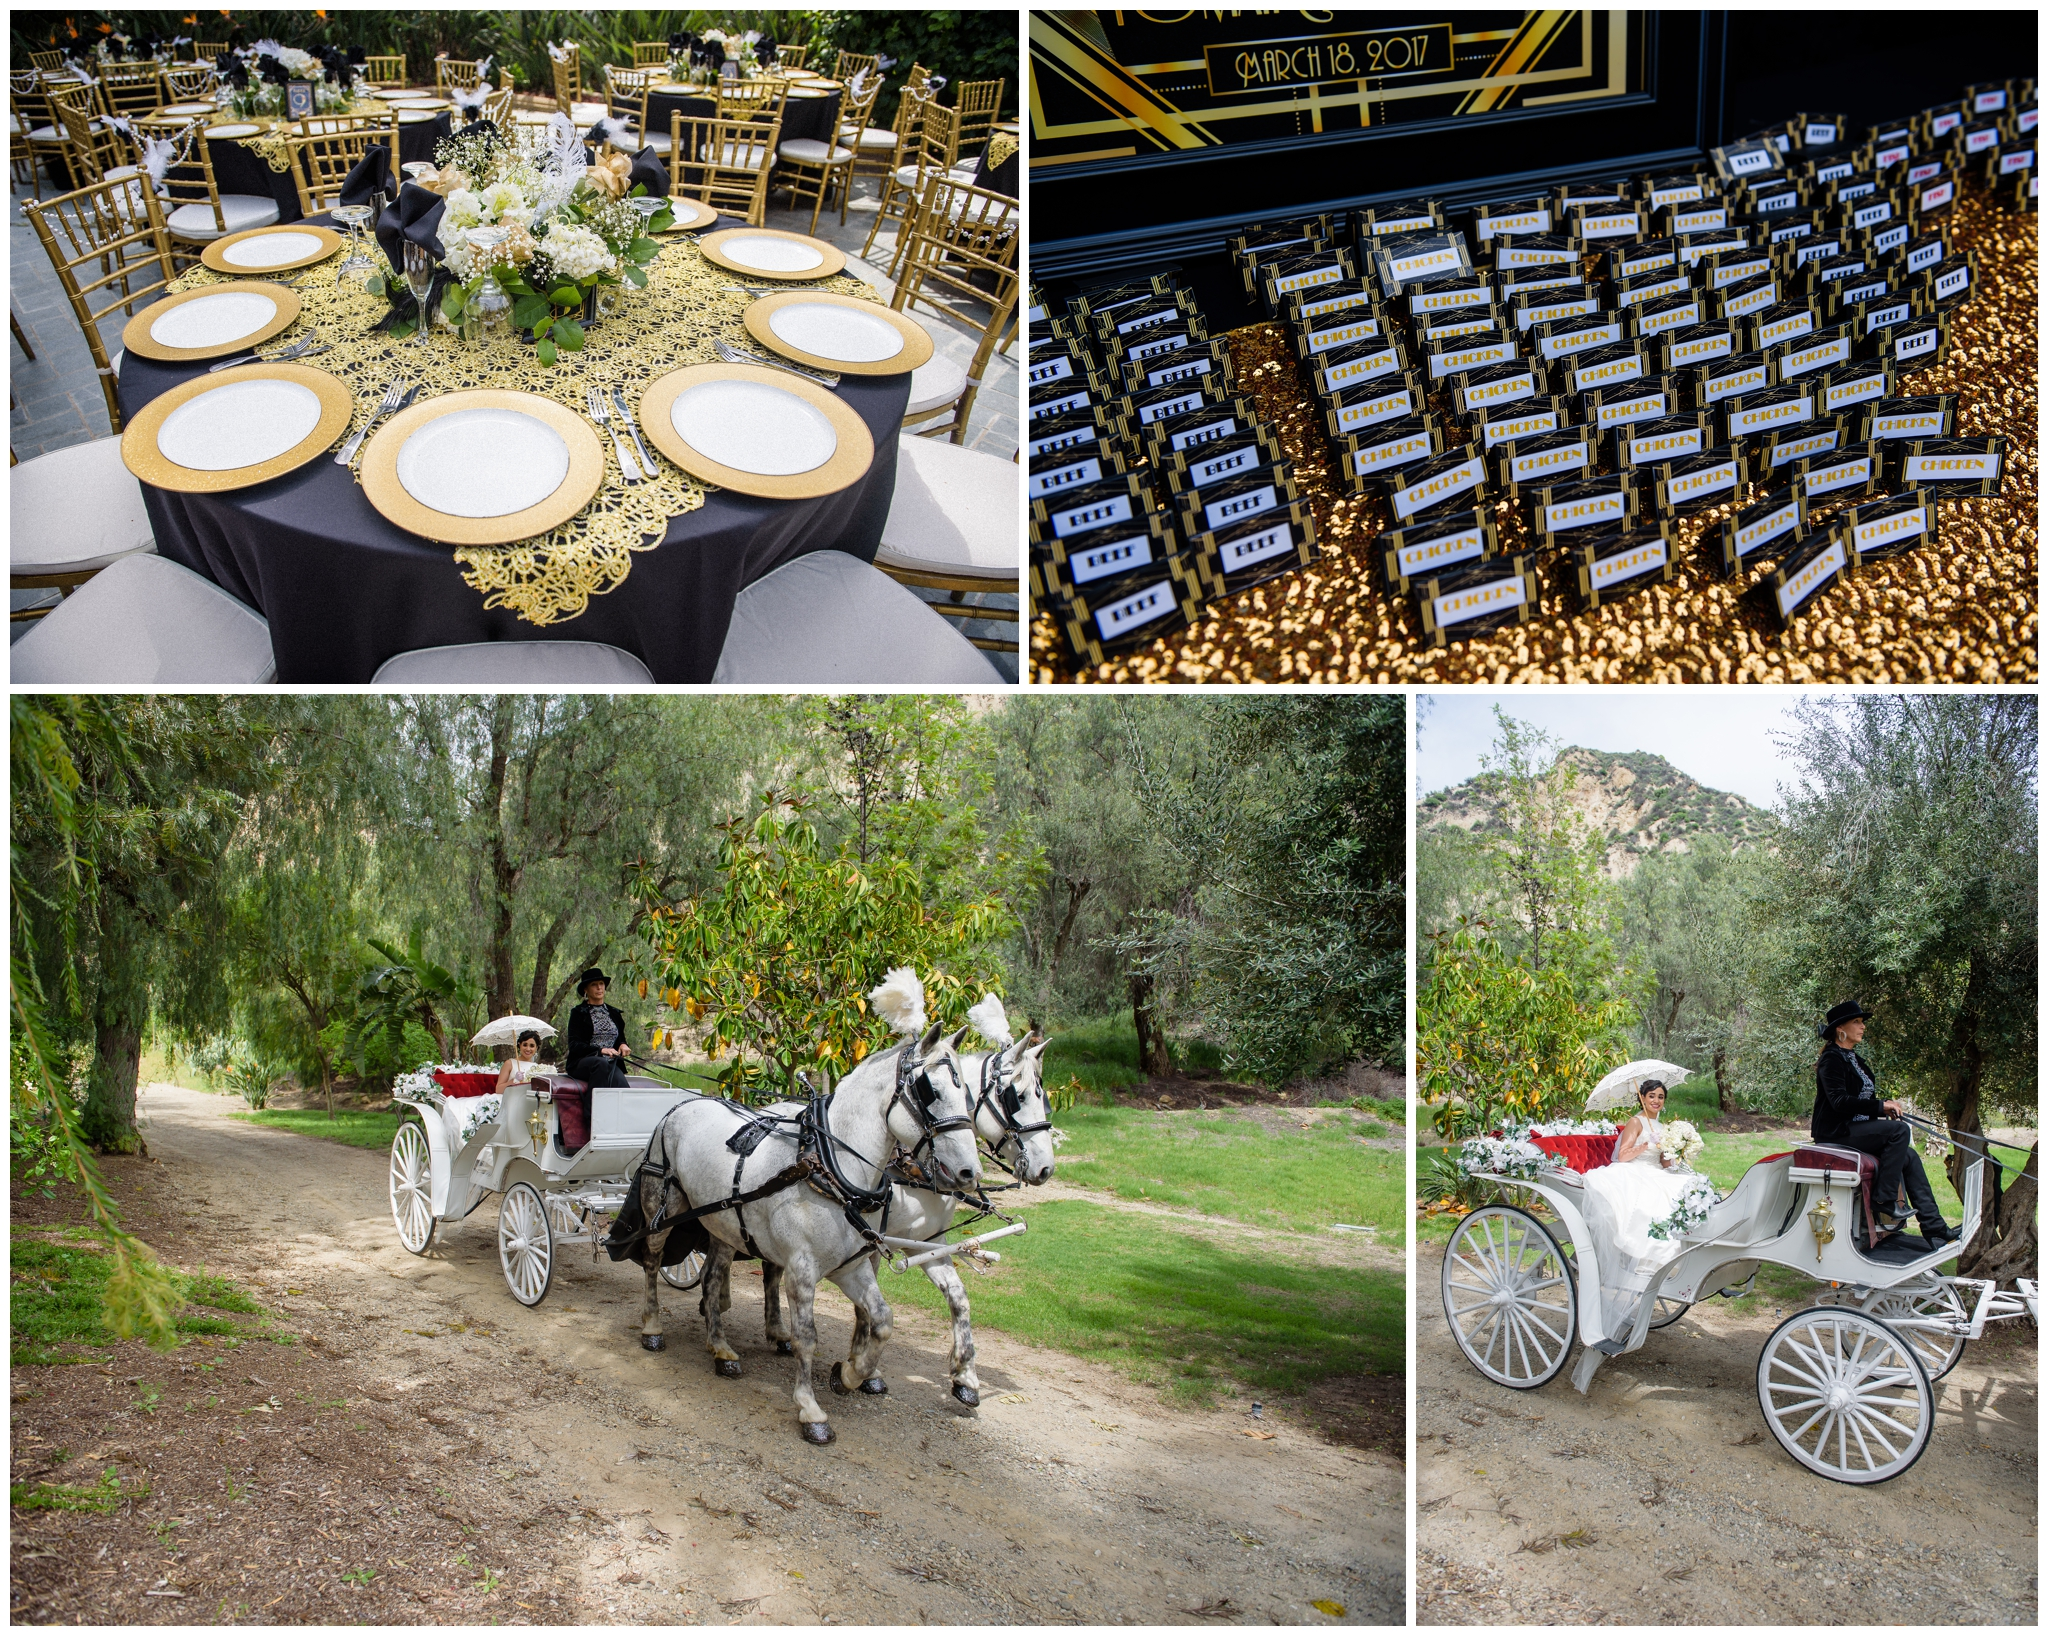 lunabellaphotos- new hall mansion-horse-carrige